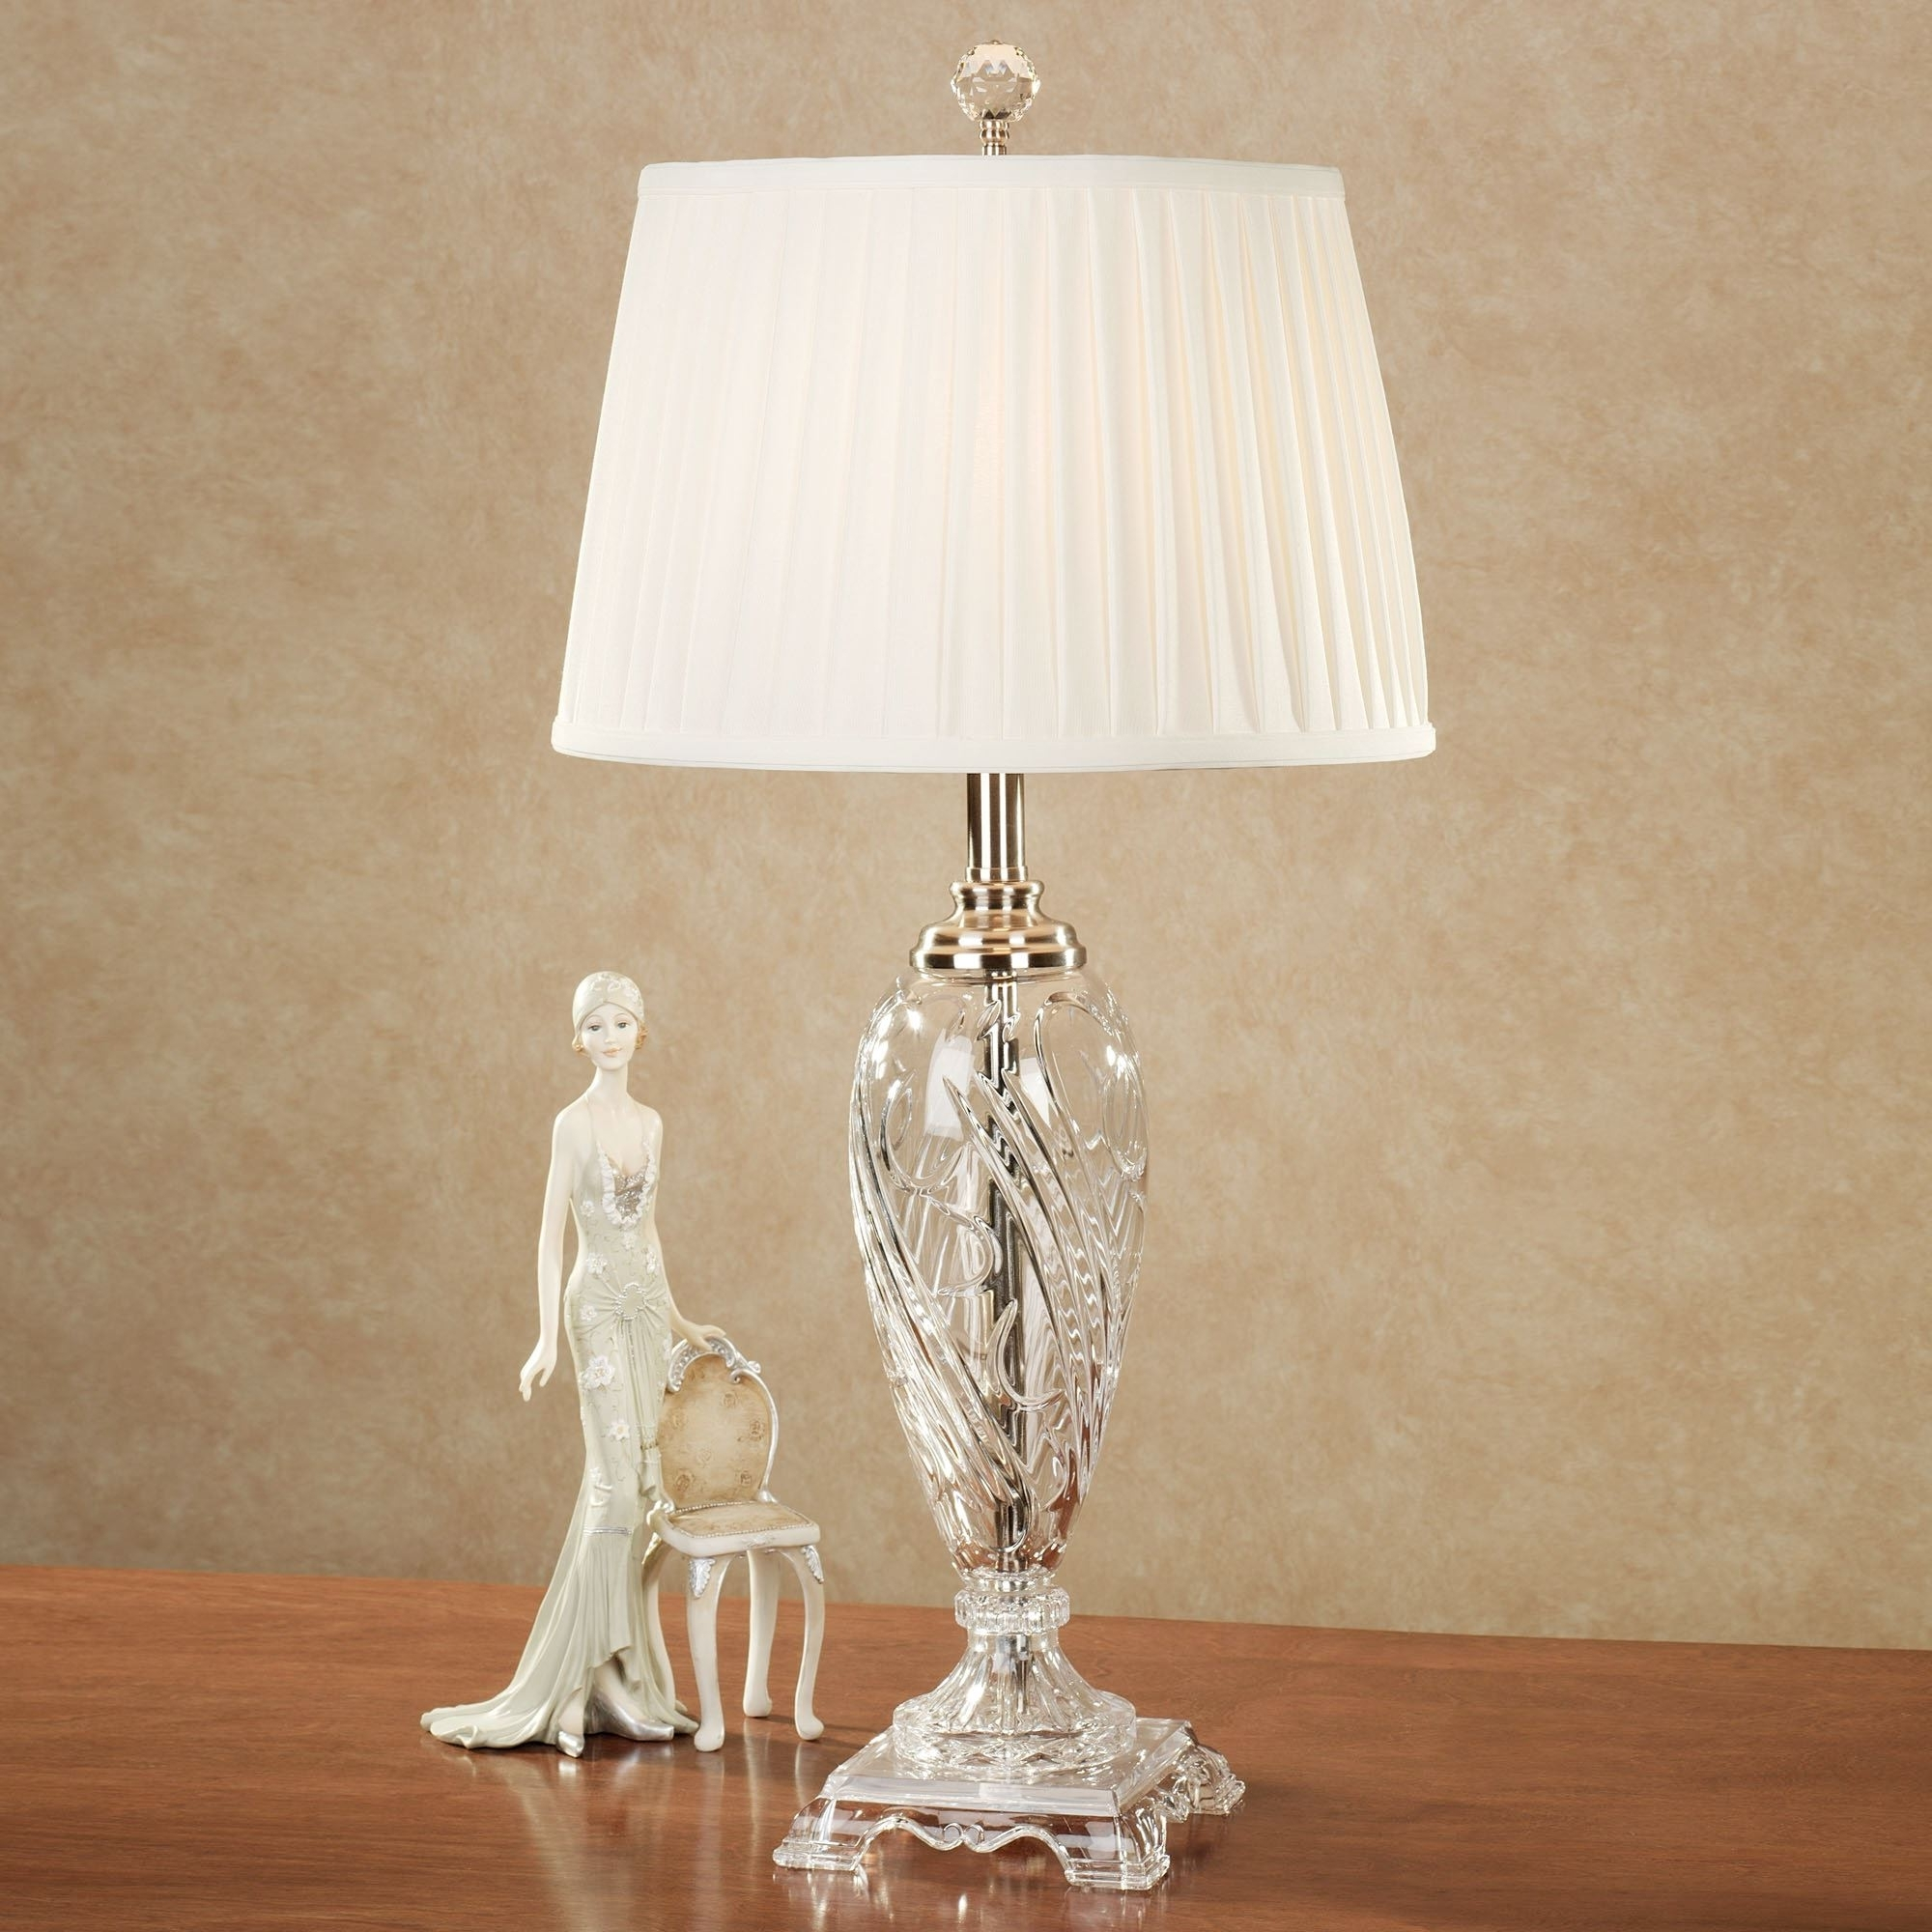 Most Recently Released Home Decor: Fetching Crystal Table Lamps & Lamps Amazing Floor Lamp With Chandelier Night Stand Lamps (View 8 of 15)